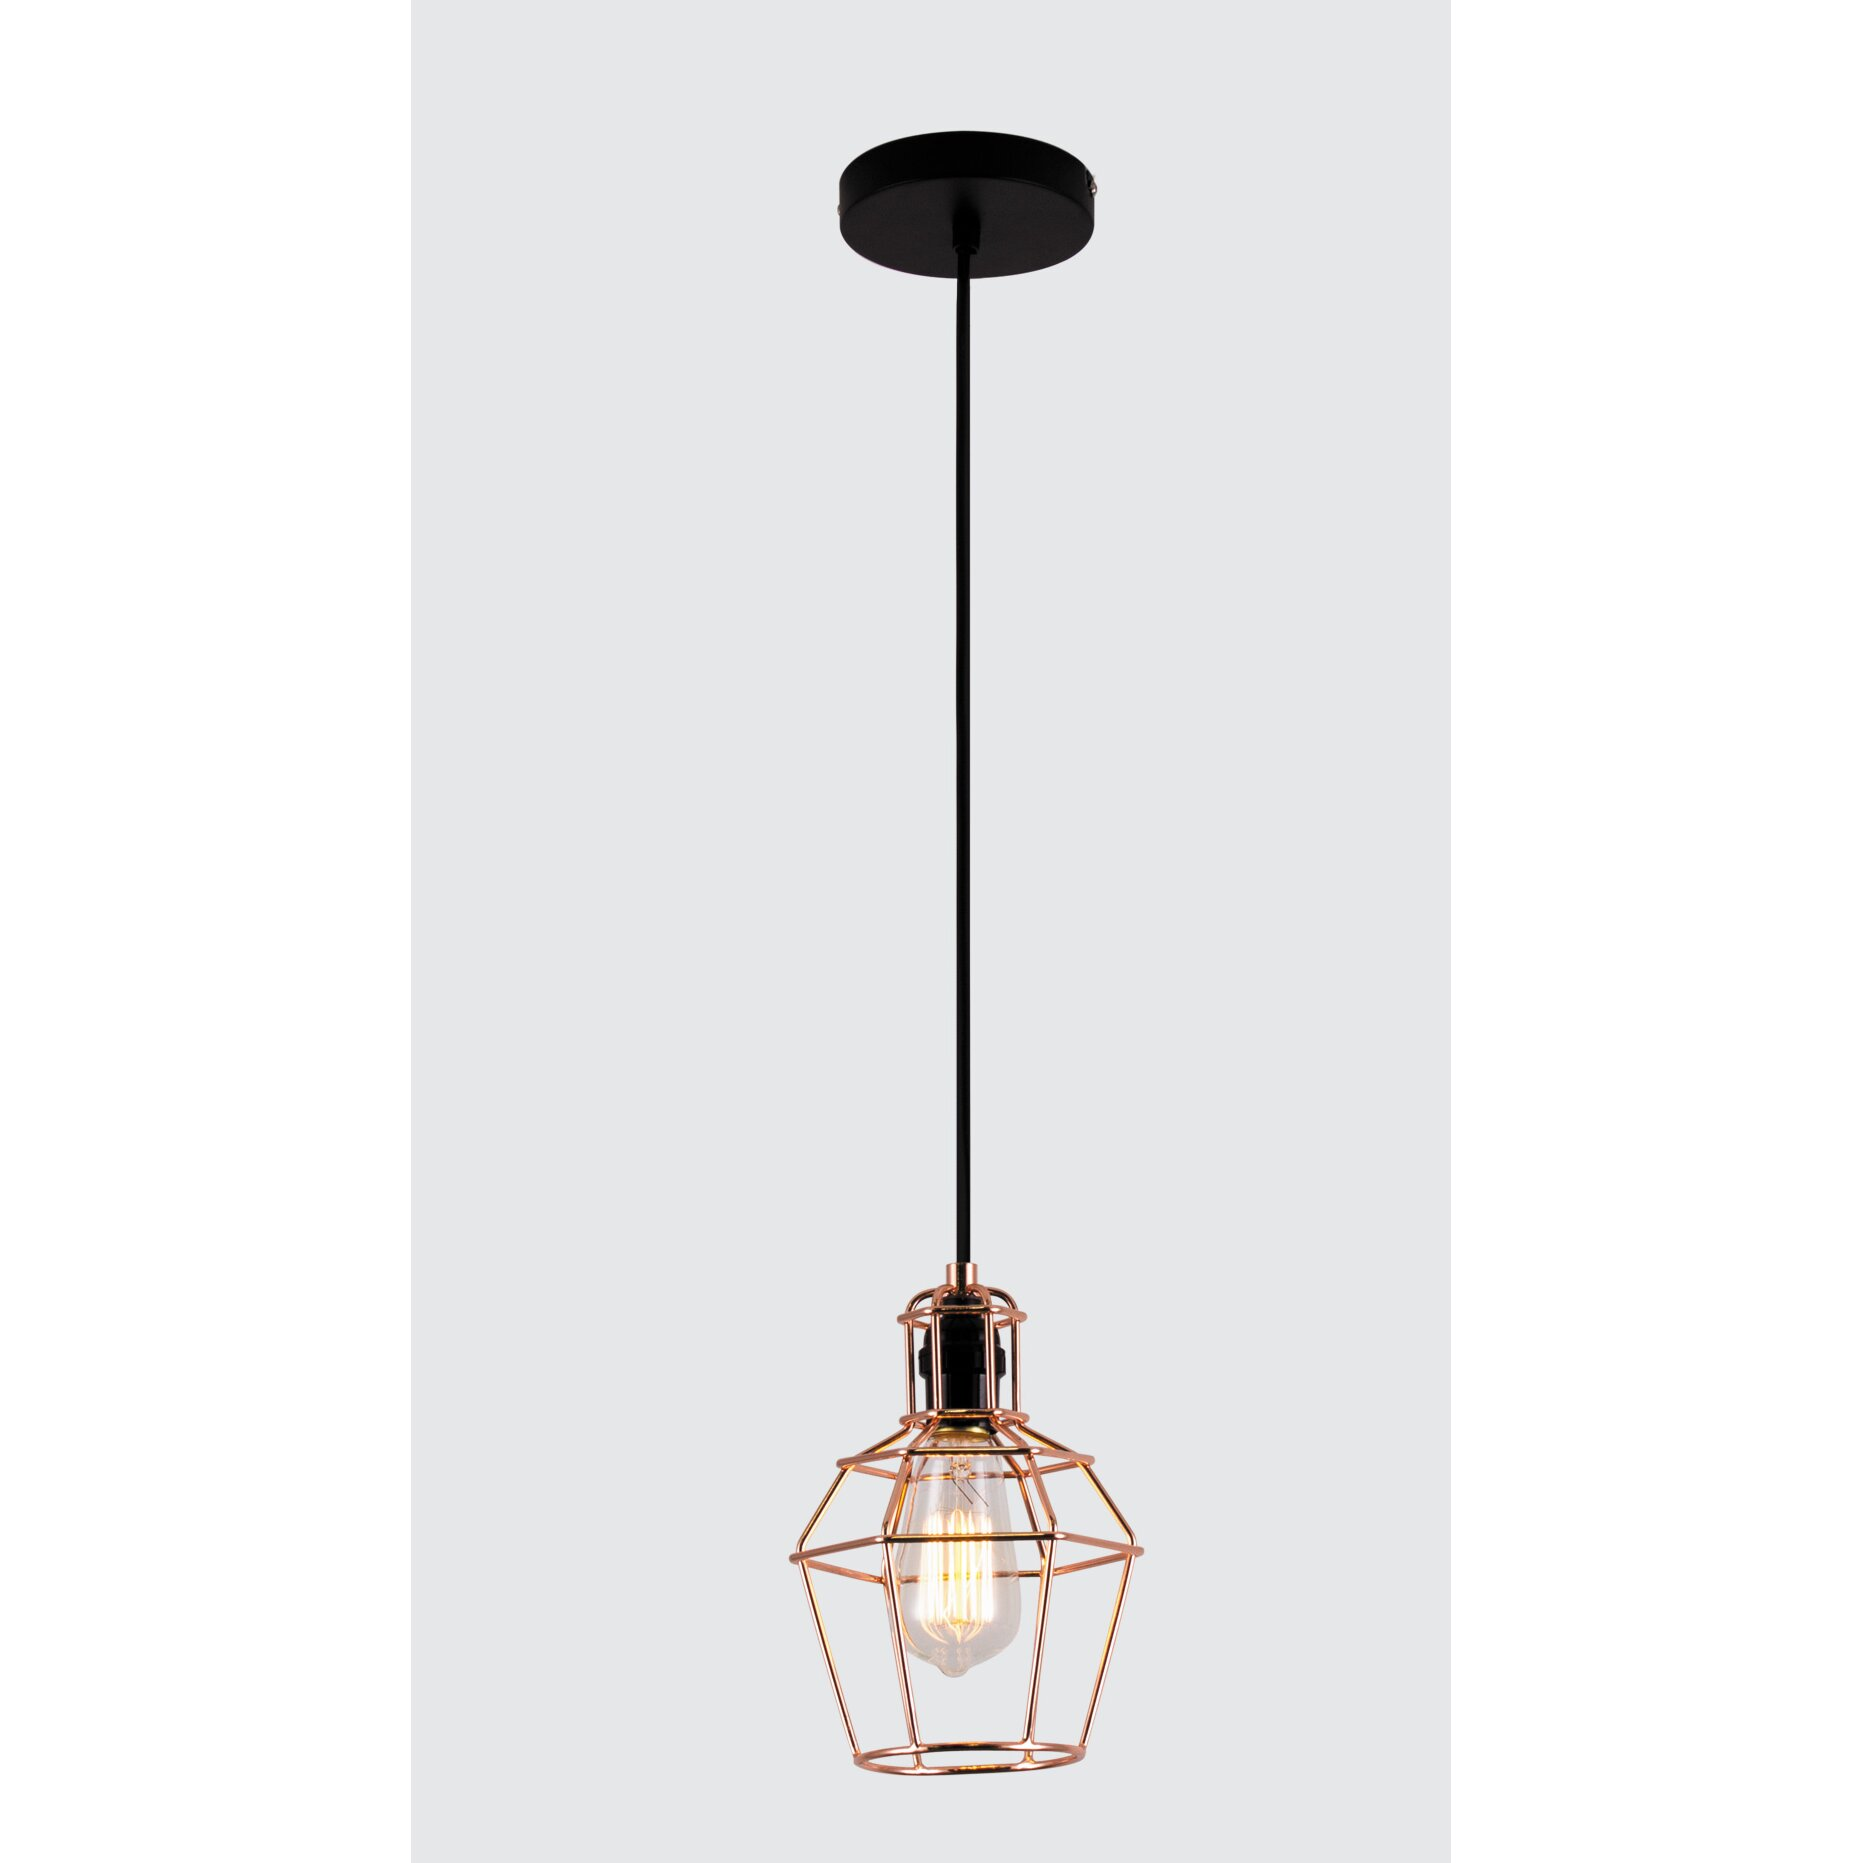 Bazz Vesta 1 Light Kitchen Island Pendant & Reviews